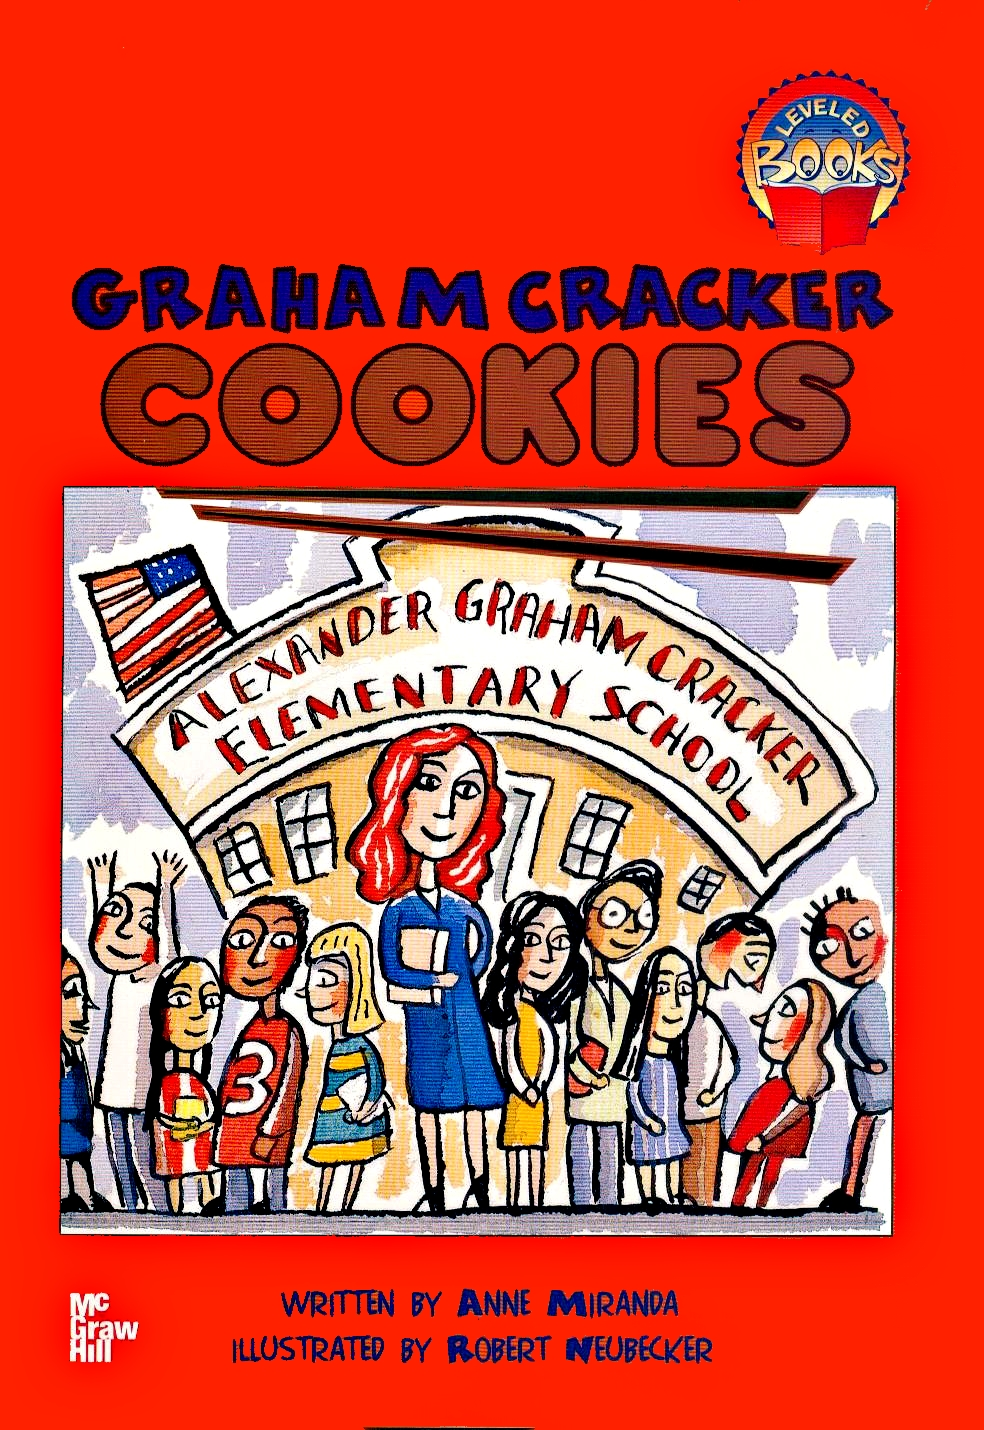 GrahamCrackerCookies.jpg